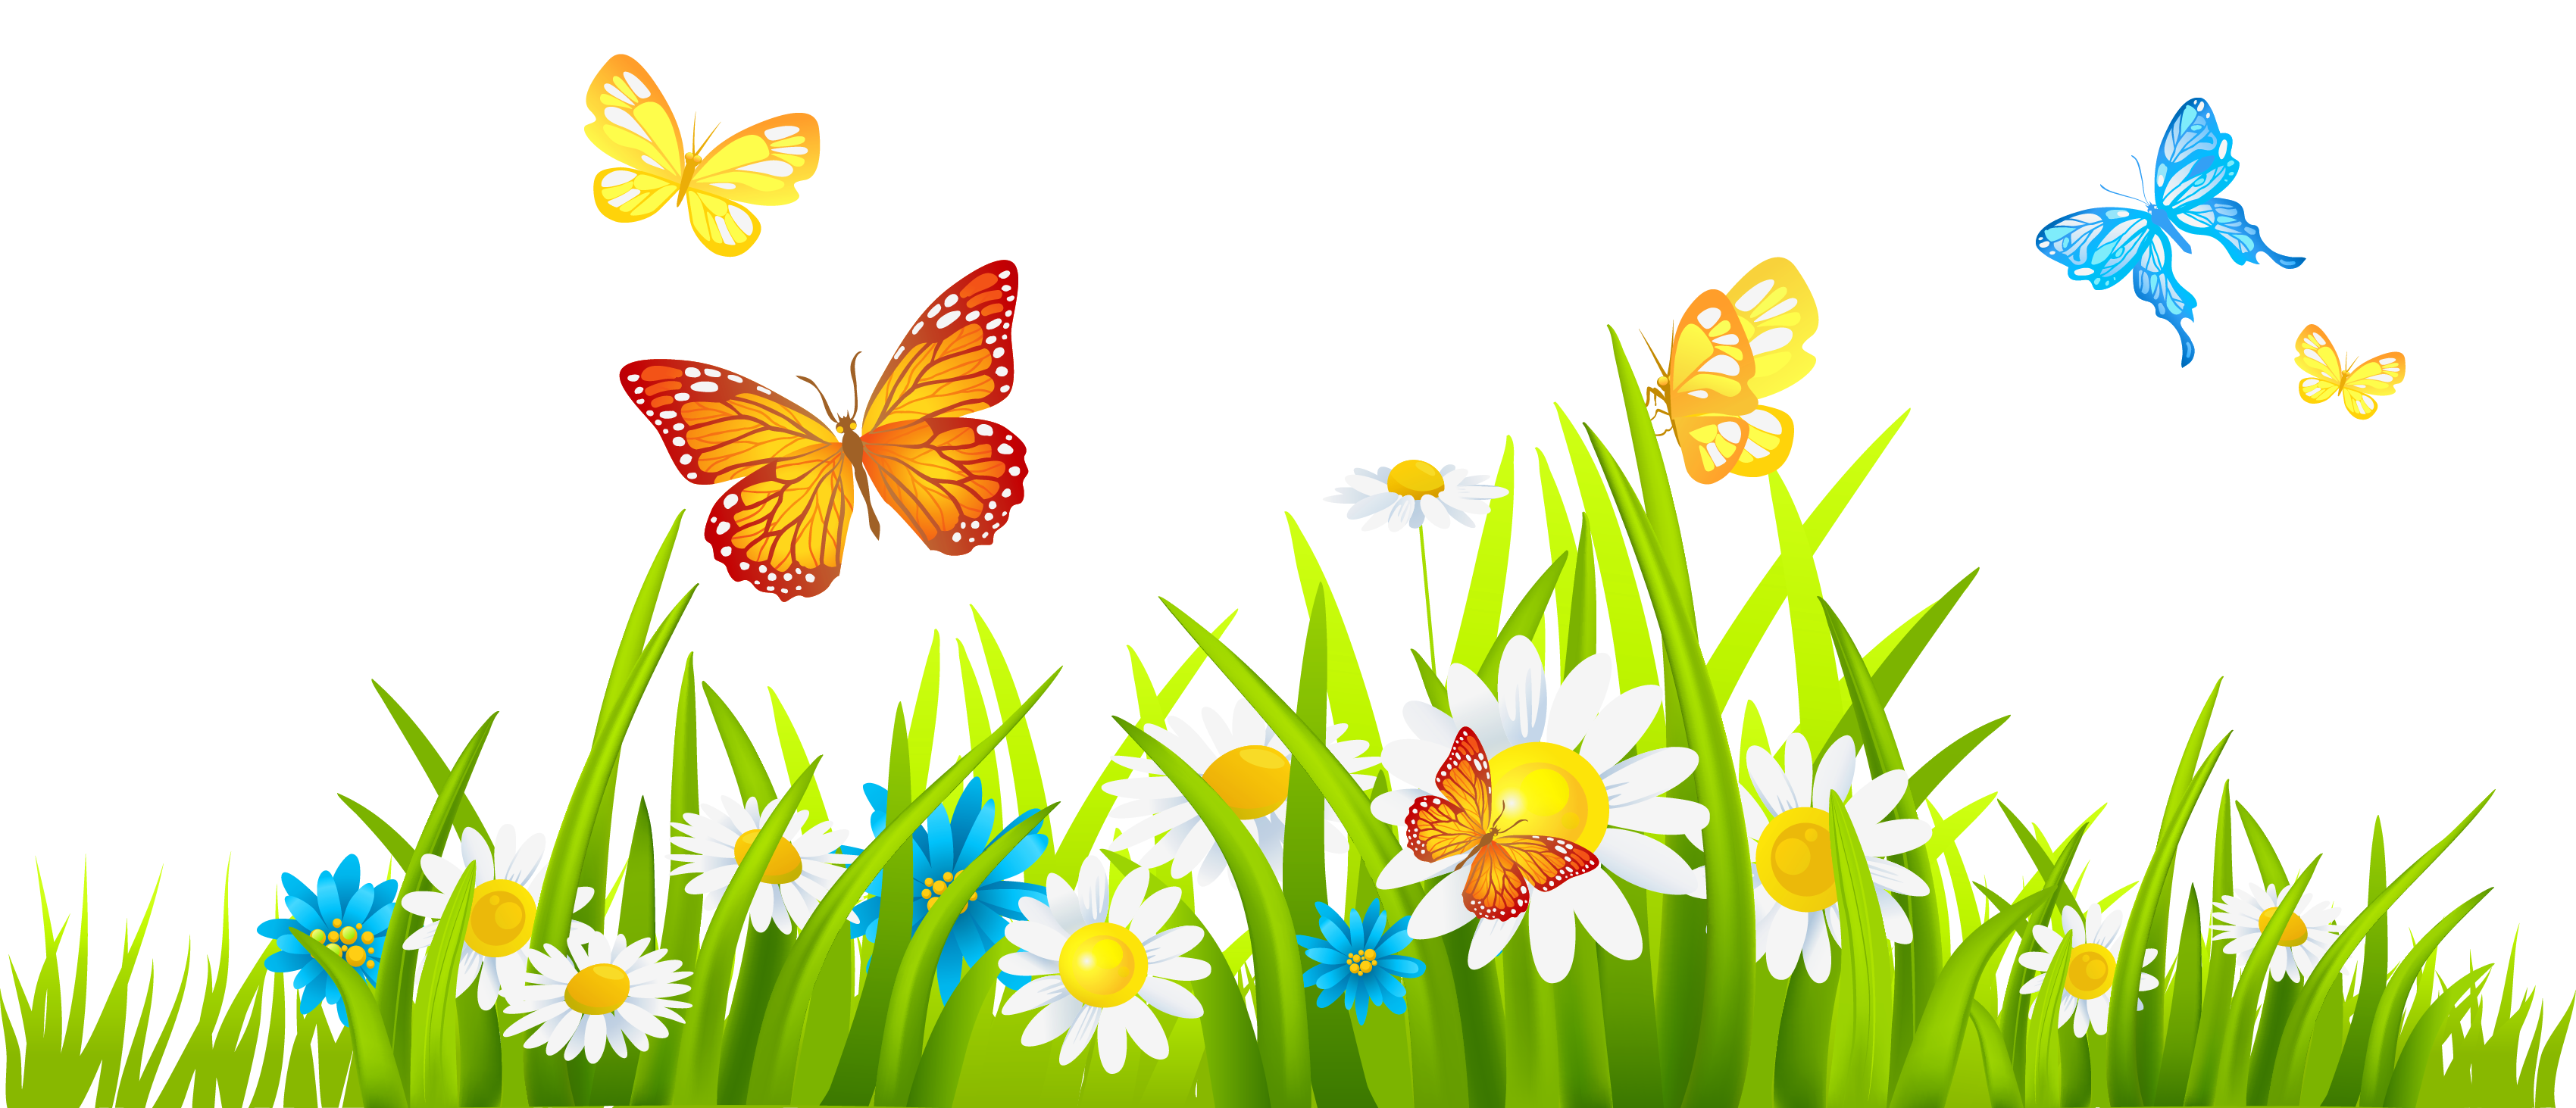 Grass ground with flowers. Ladybug clipart border